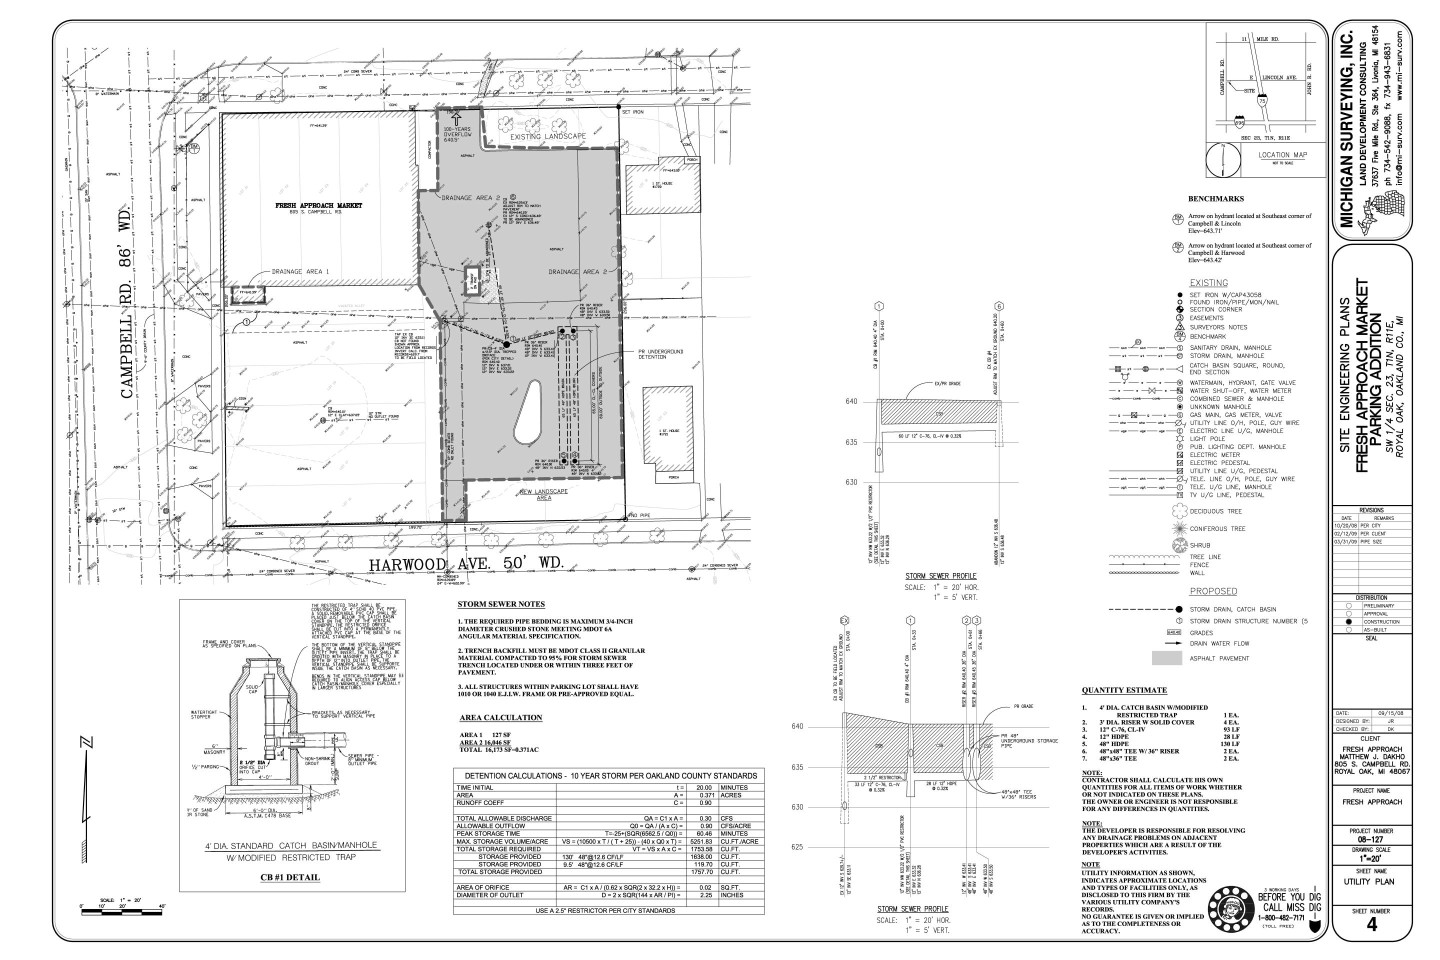 Industrial Building Site Planning Enginerr